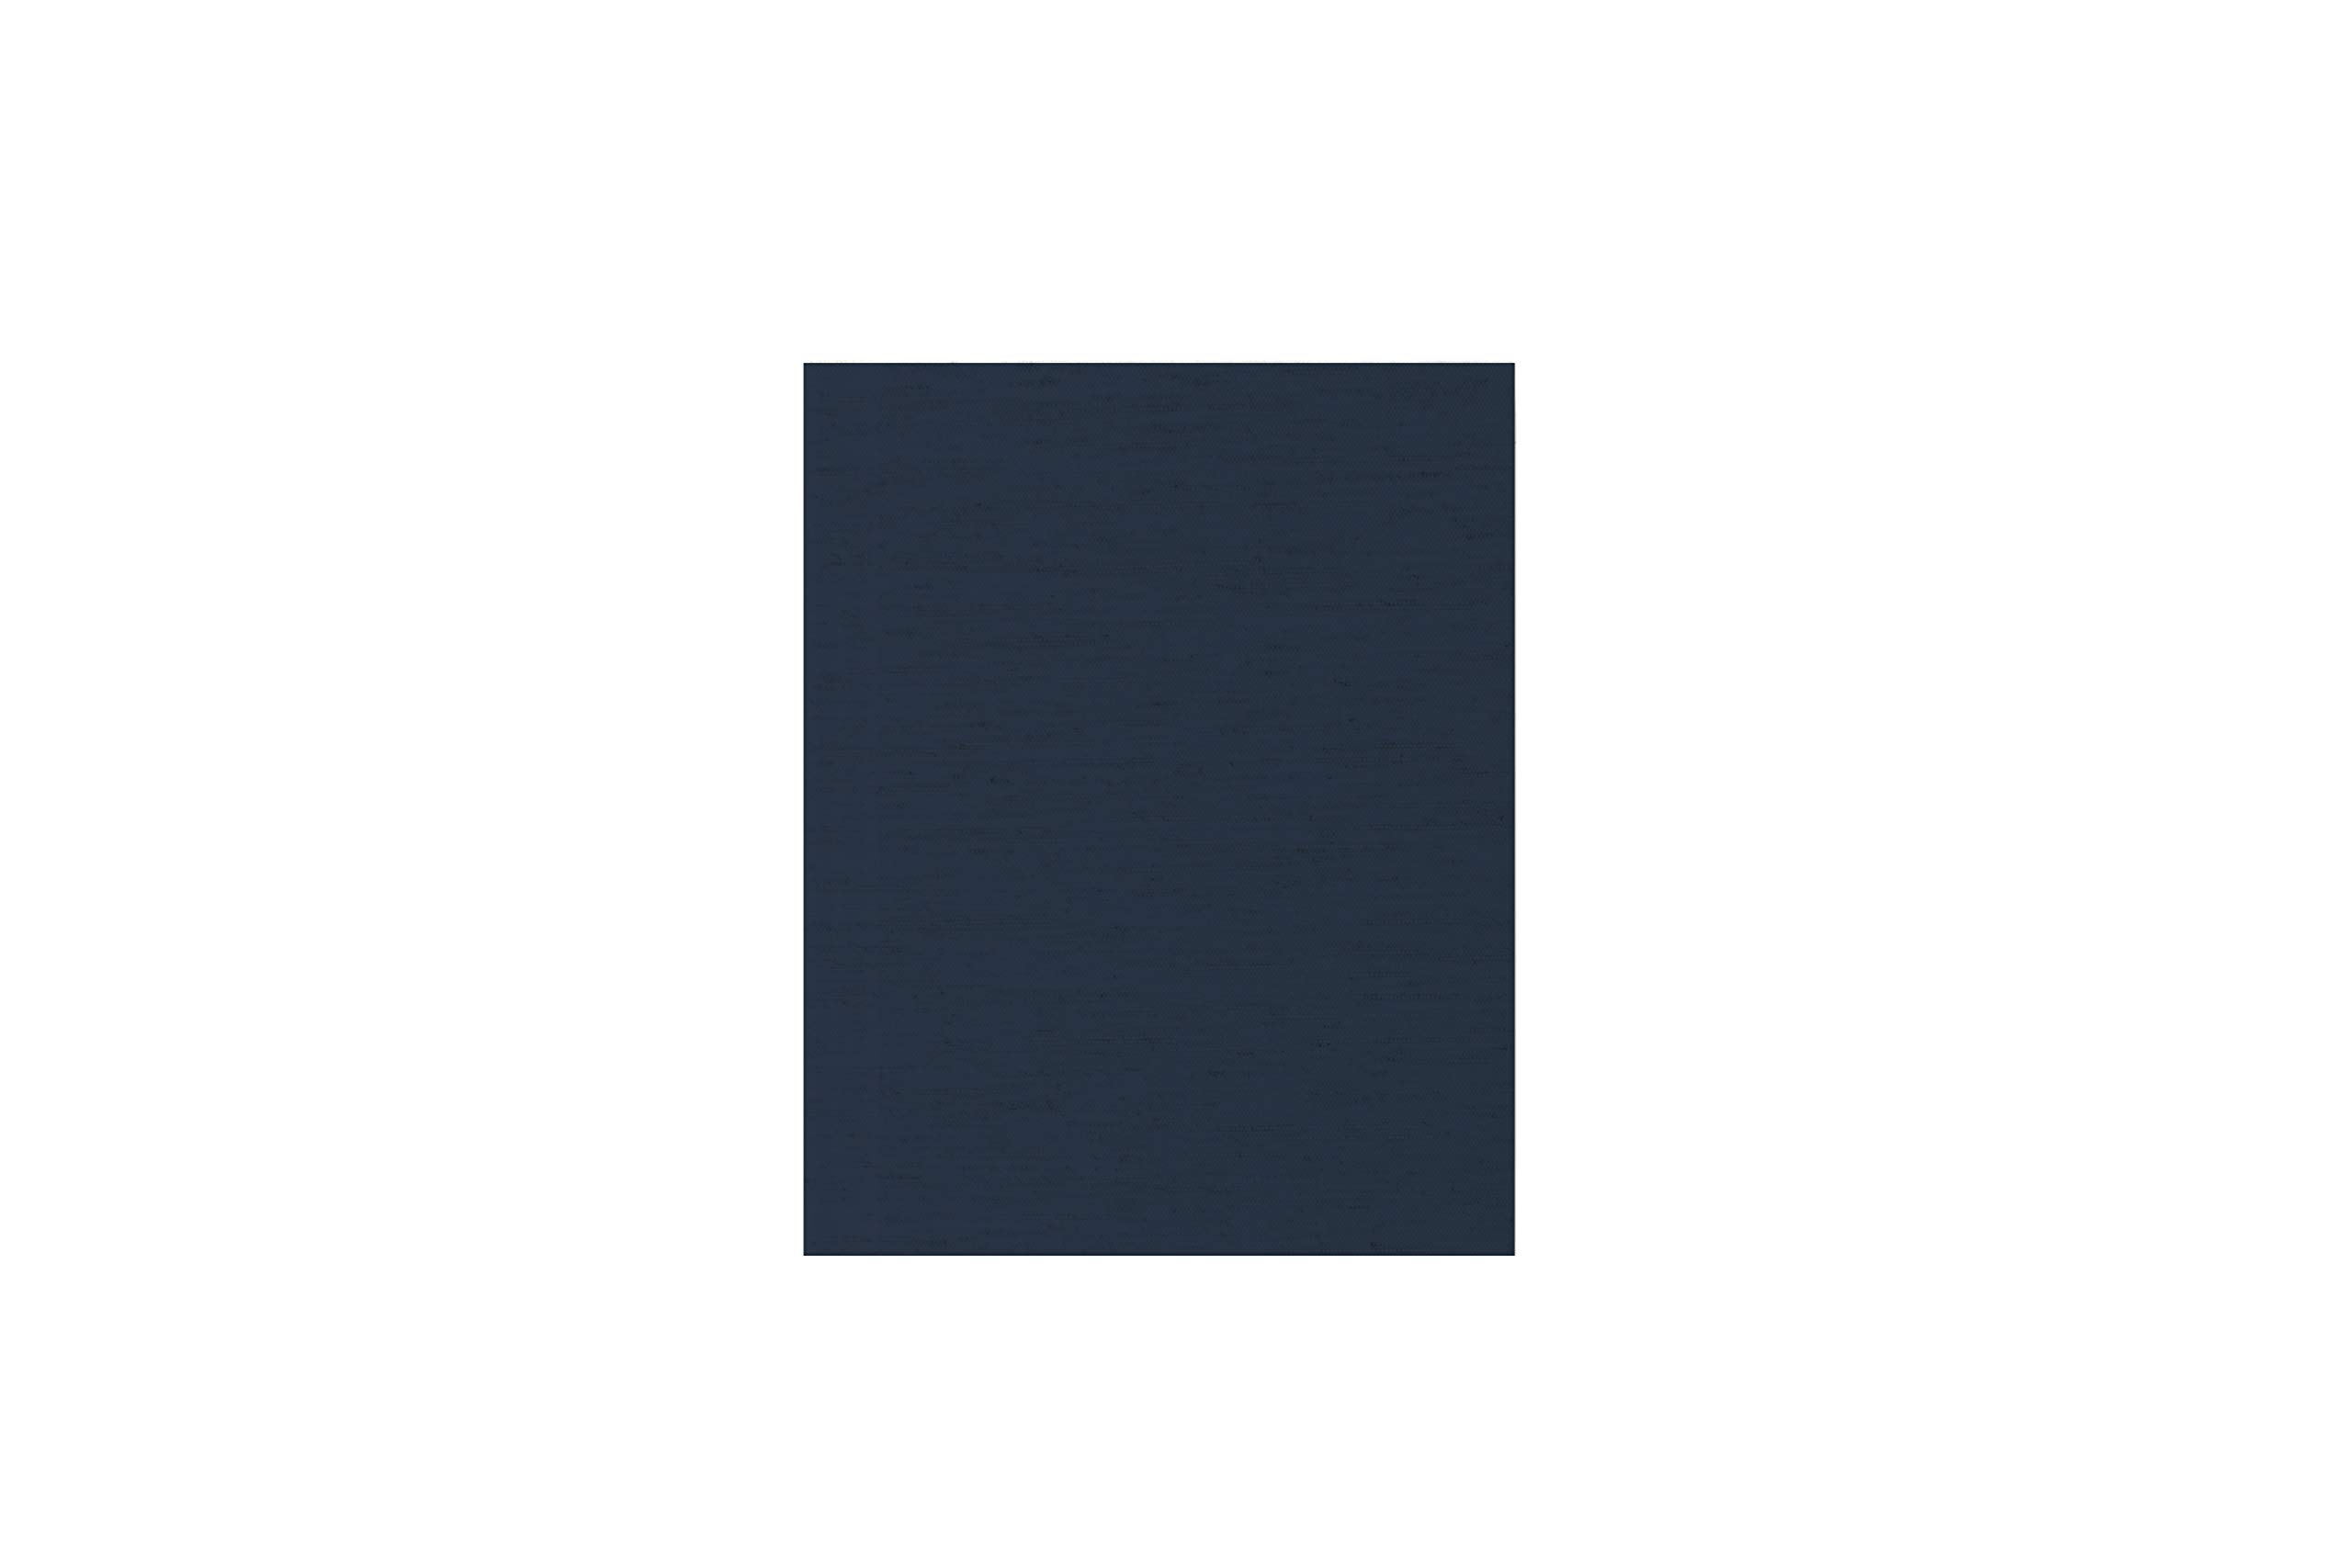 Album Envy Heirloom Professional Matted Slip-in Photo Album, Classic Cover Style, Choose 10-30 Photo Sizes, 5x7 or 4x6, Acid-Free Archival Quality Mats (Navy, 5''x7'' - 30 Photos) by Album Envy